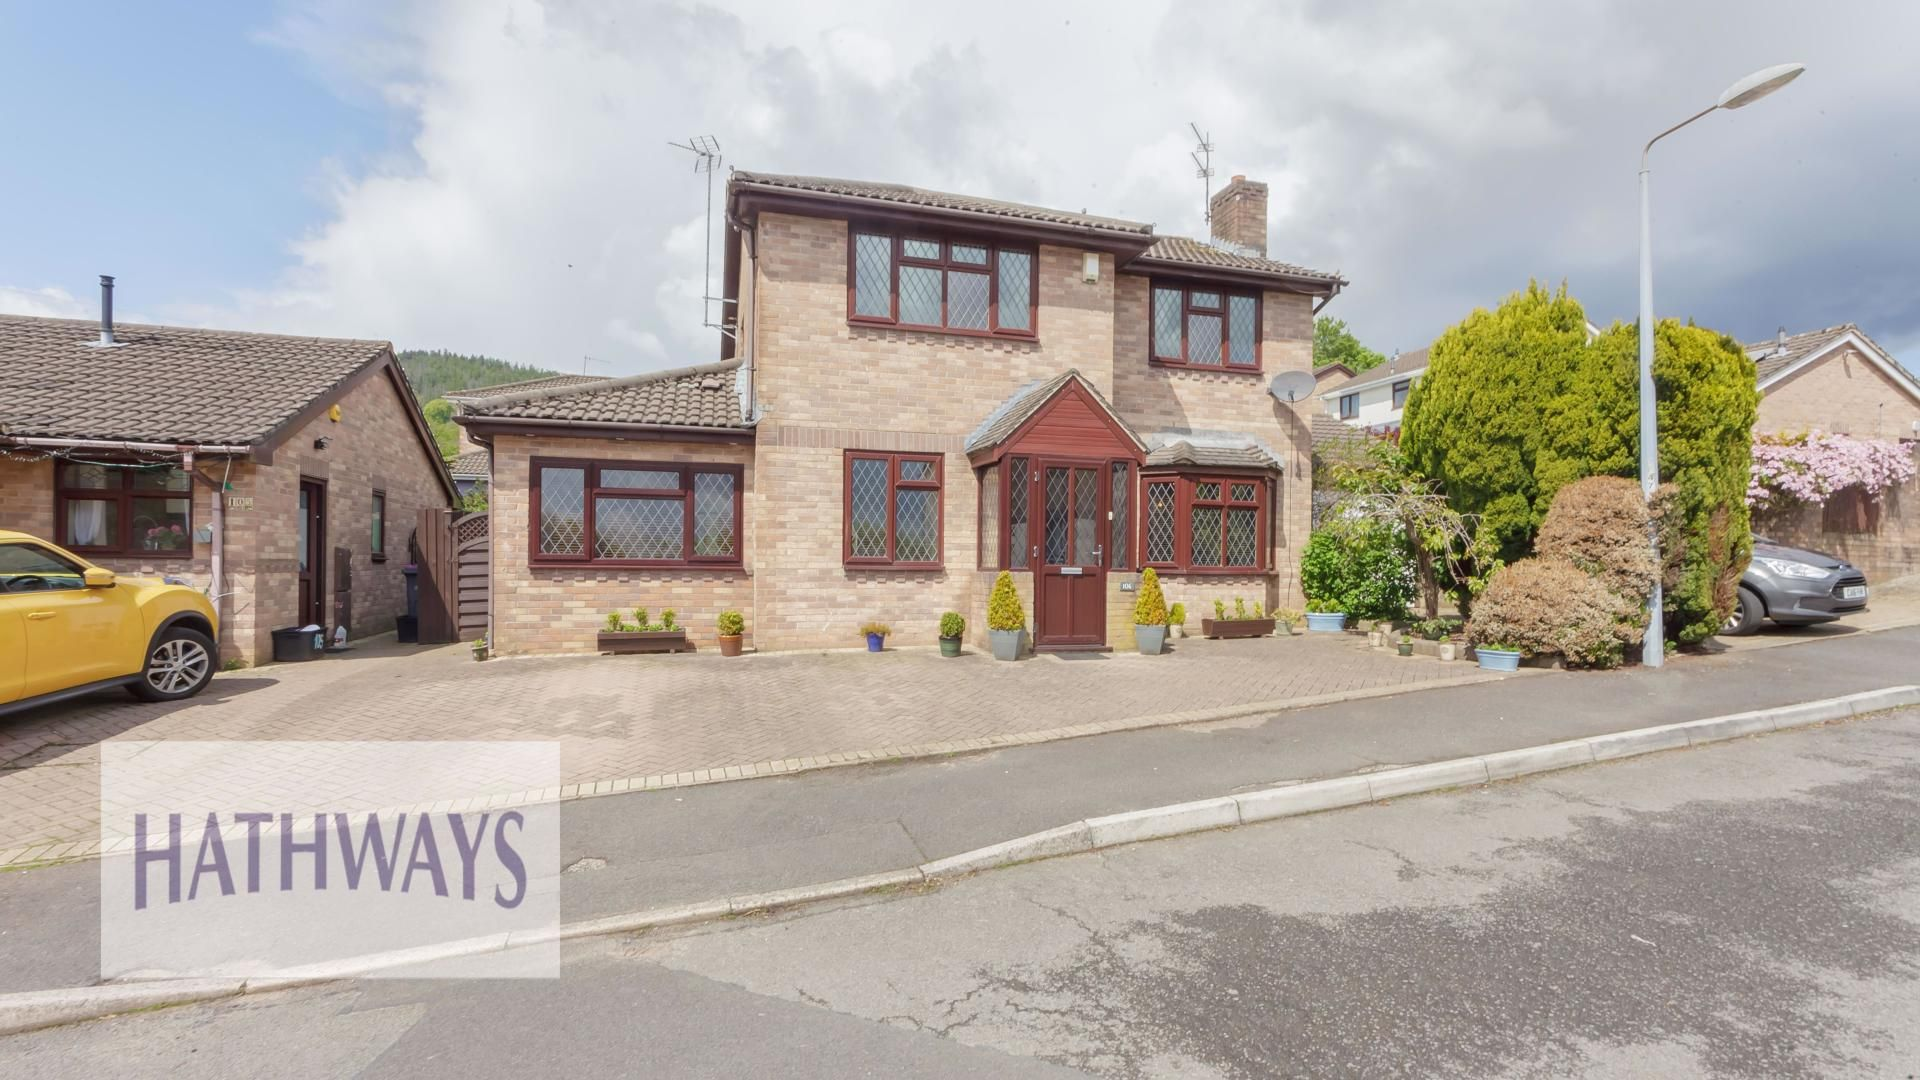 4 bed house for sale in Ashleigh Court, NP44